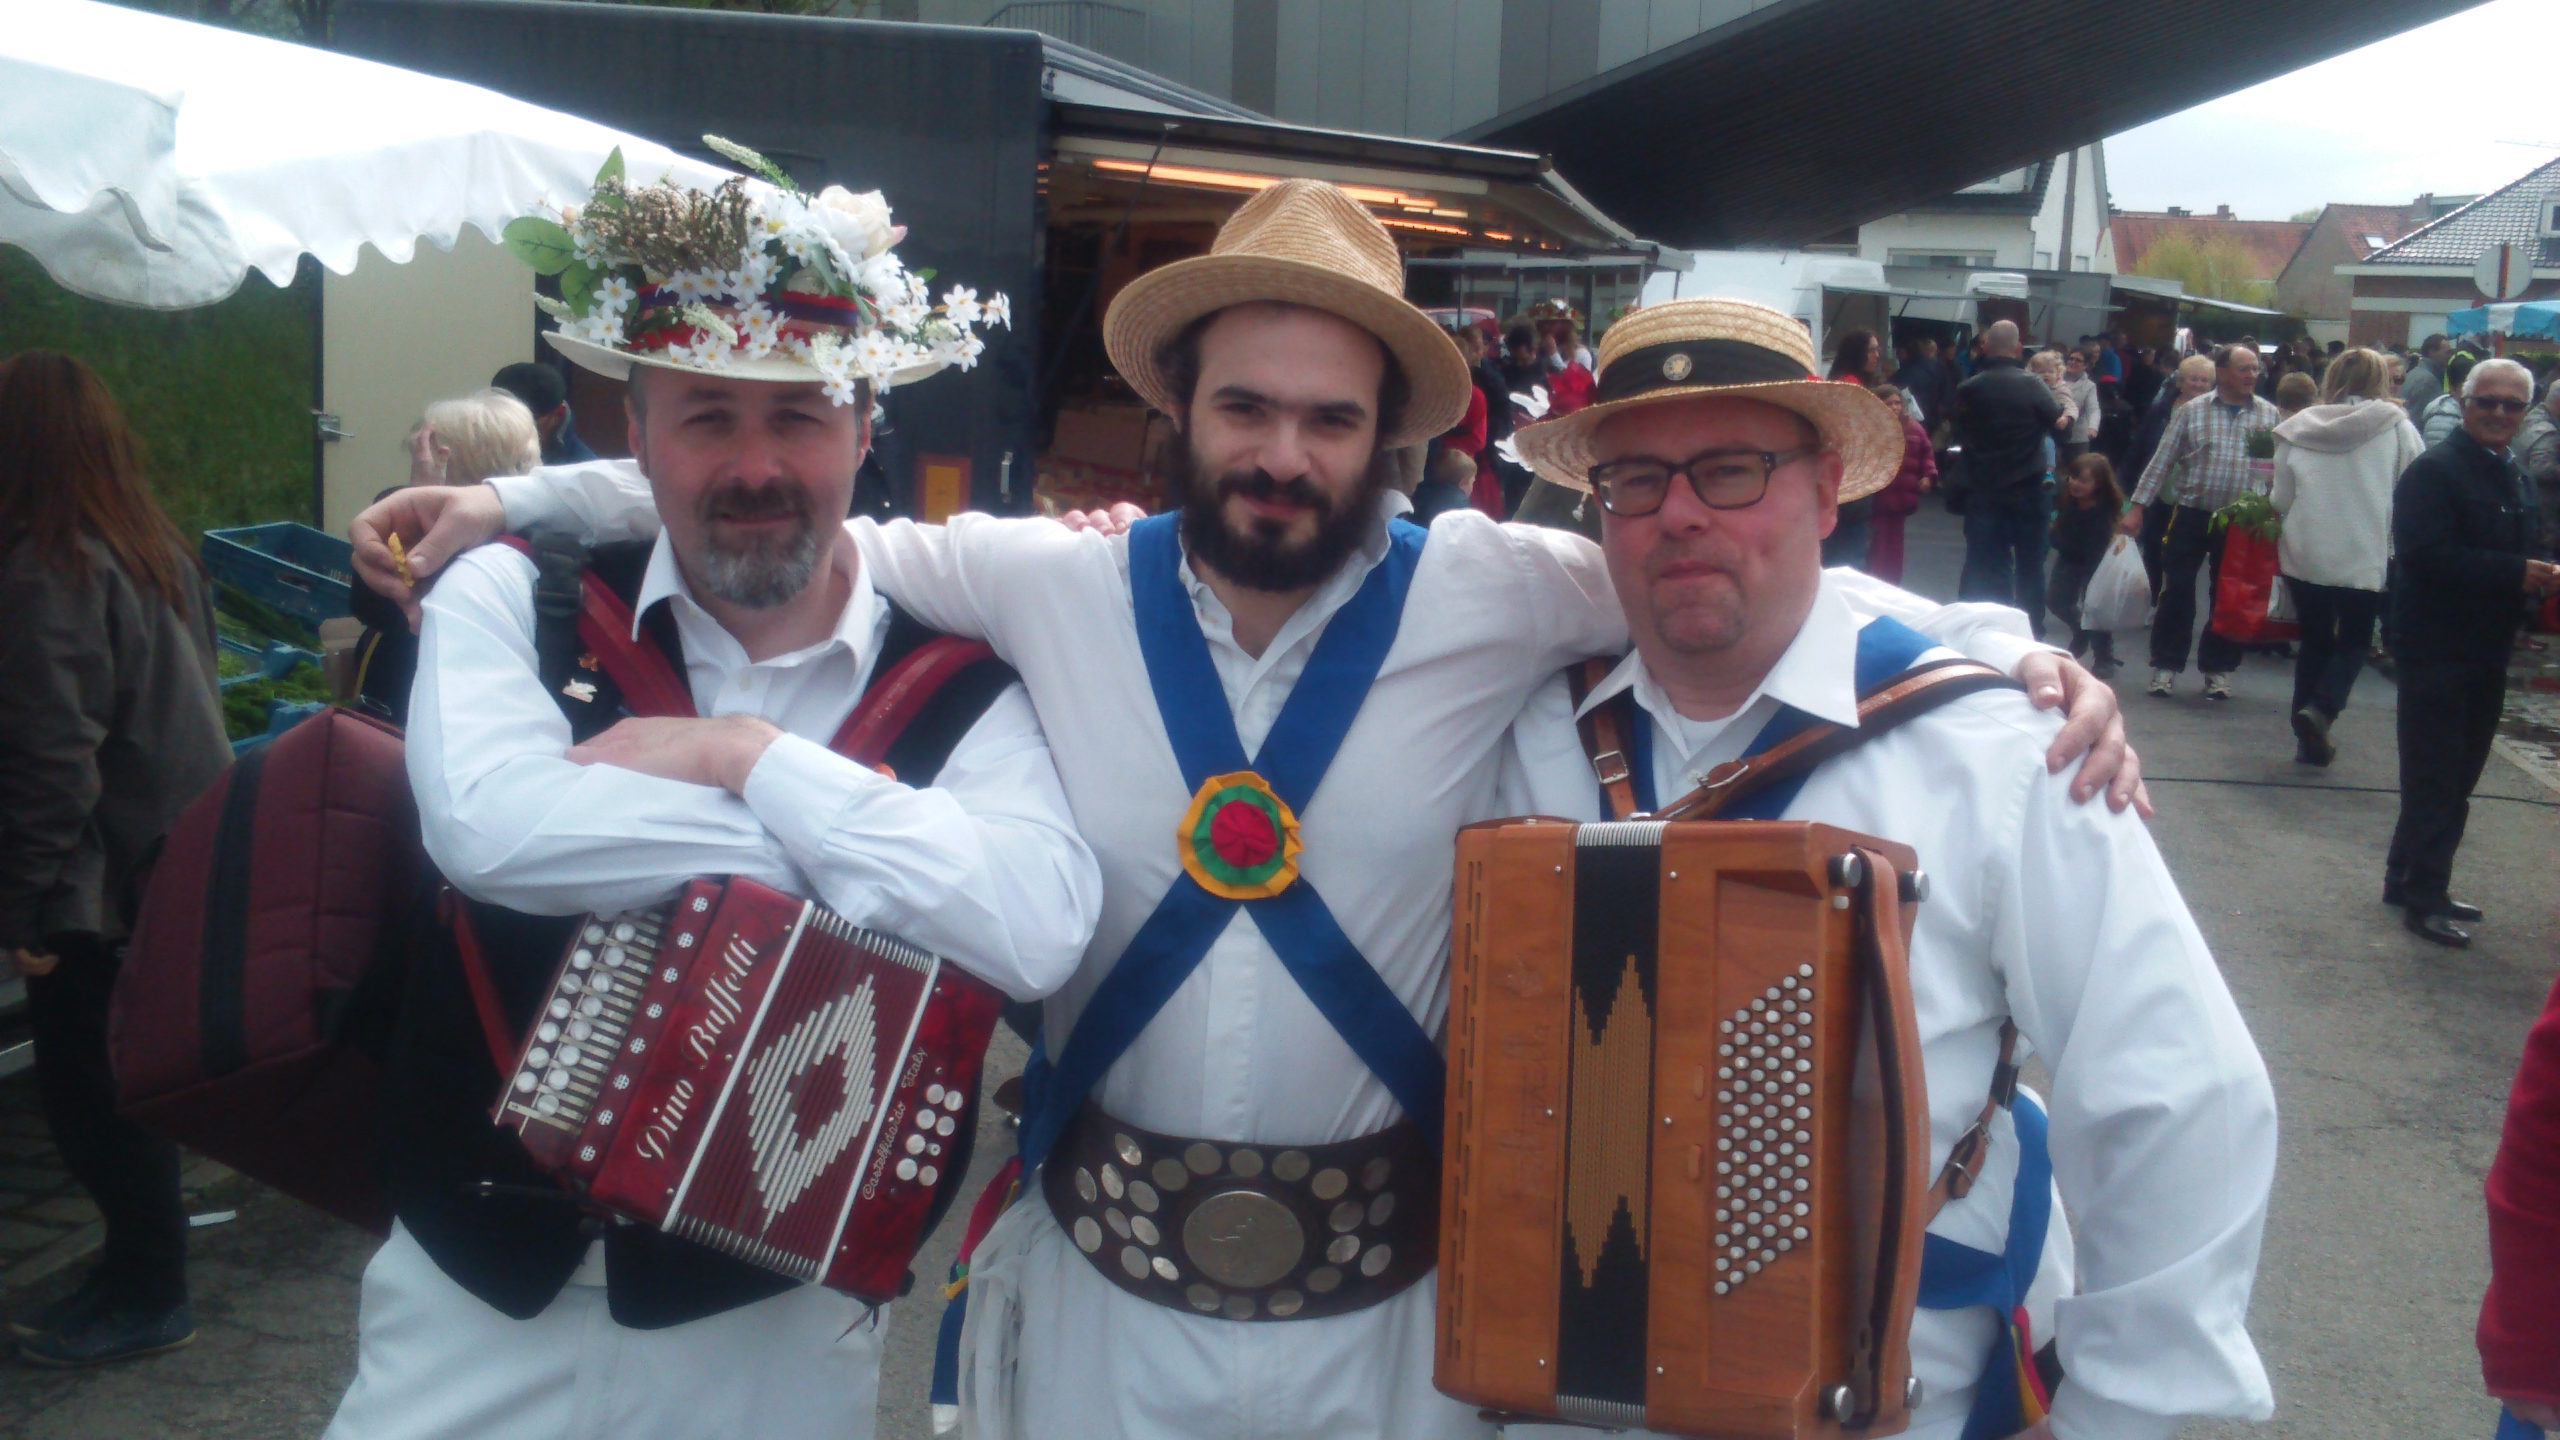 Jockey Dancing at a Belgian Market - Phil with Musicians - May 2016